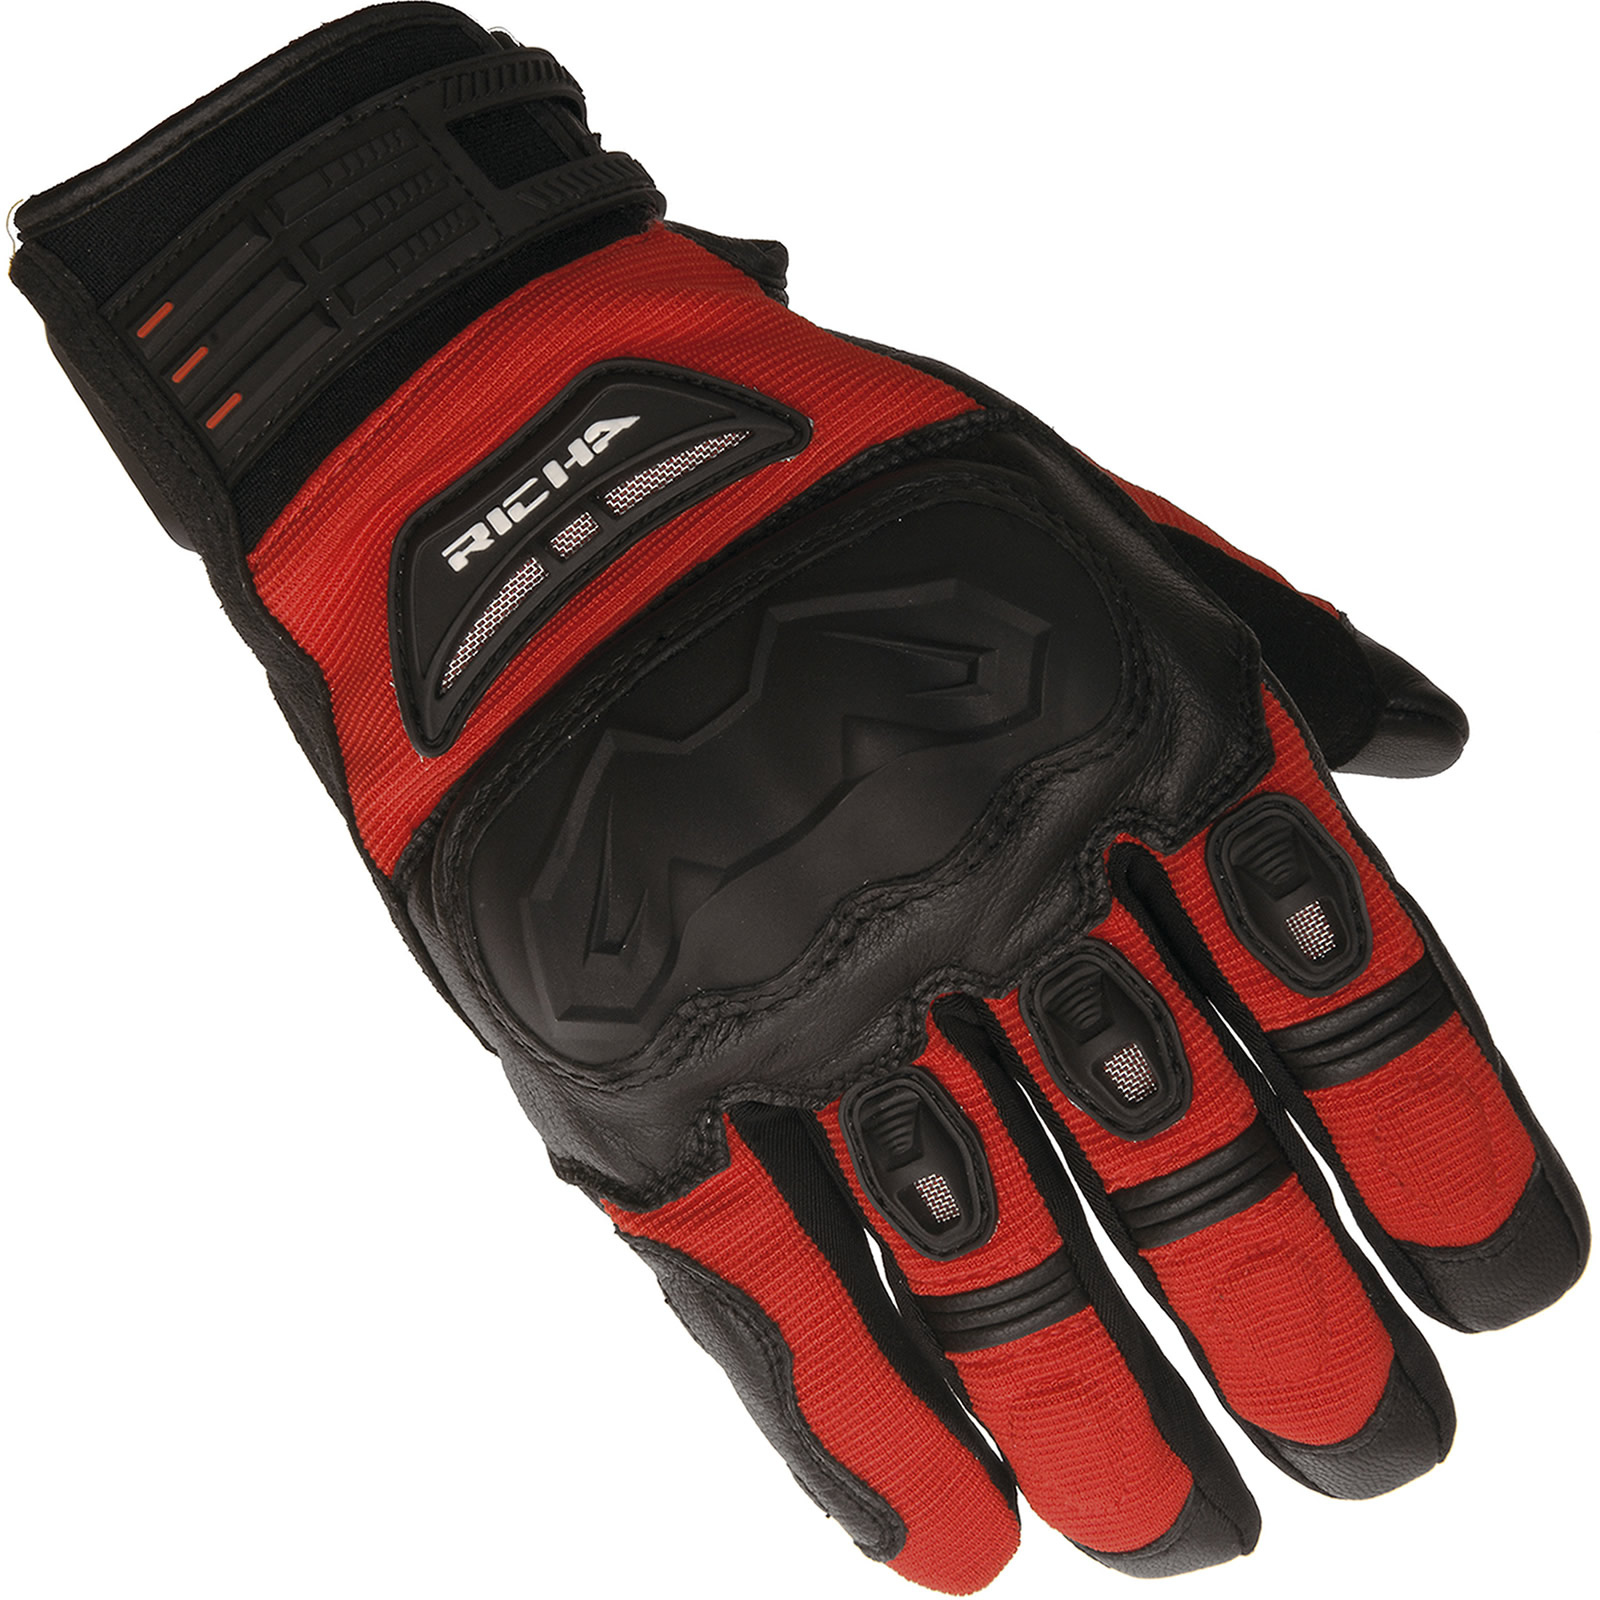 Motorcycle Gloves Touring - Richa evolution mens motorcycle gloves leather textile vented